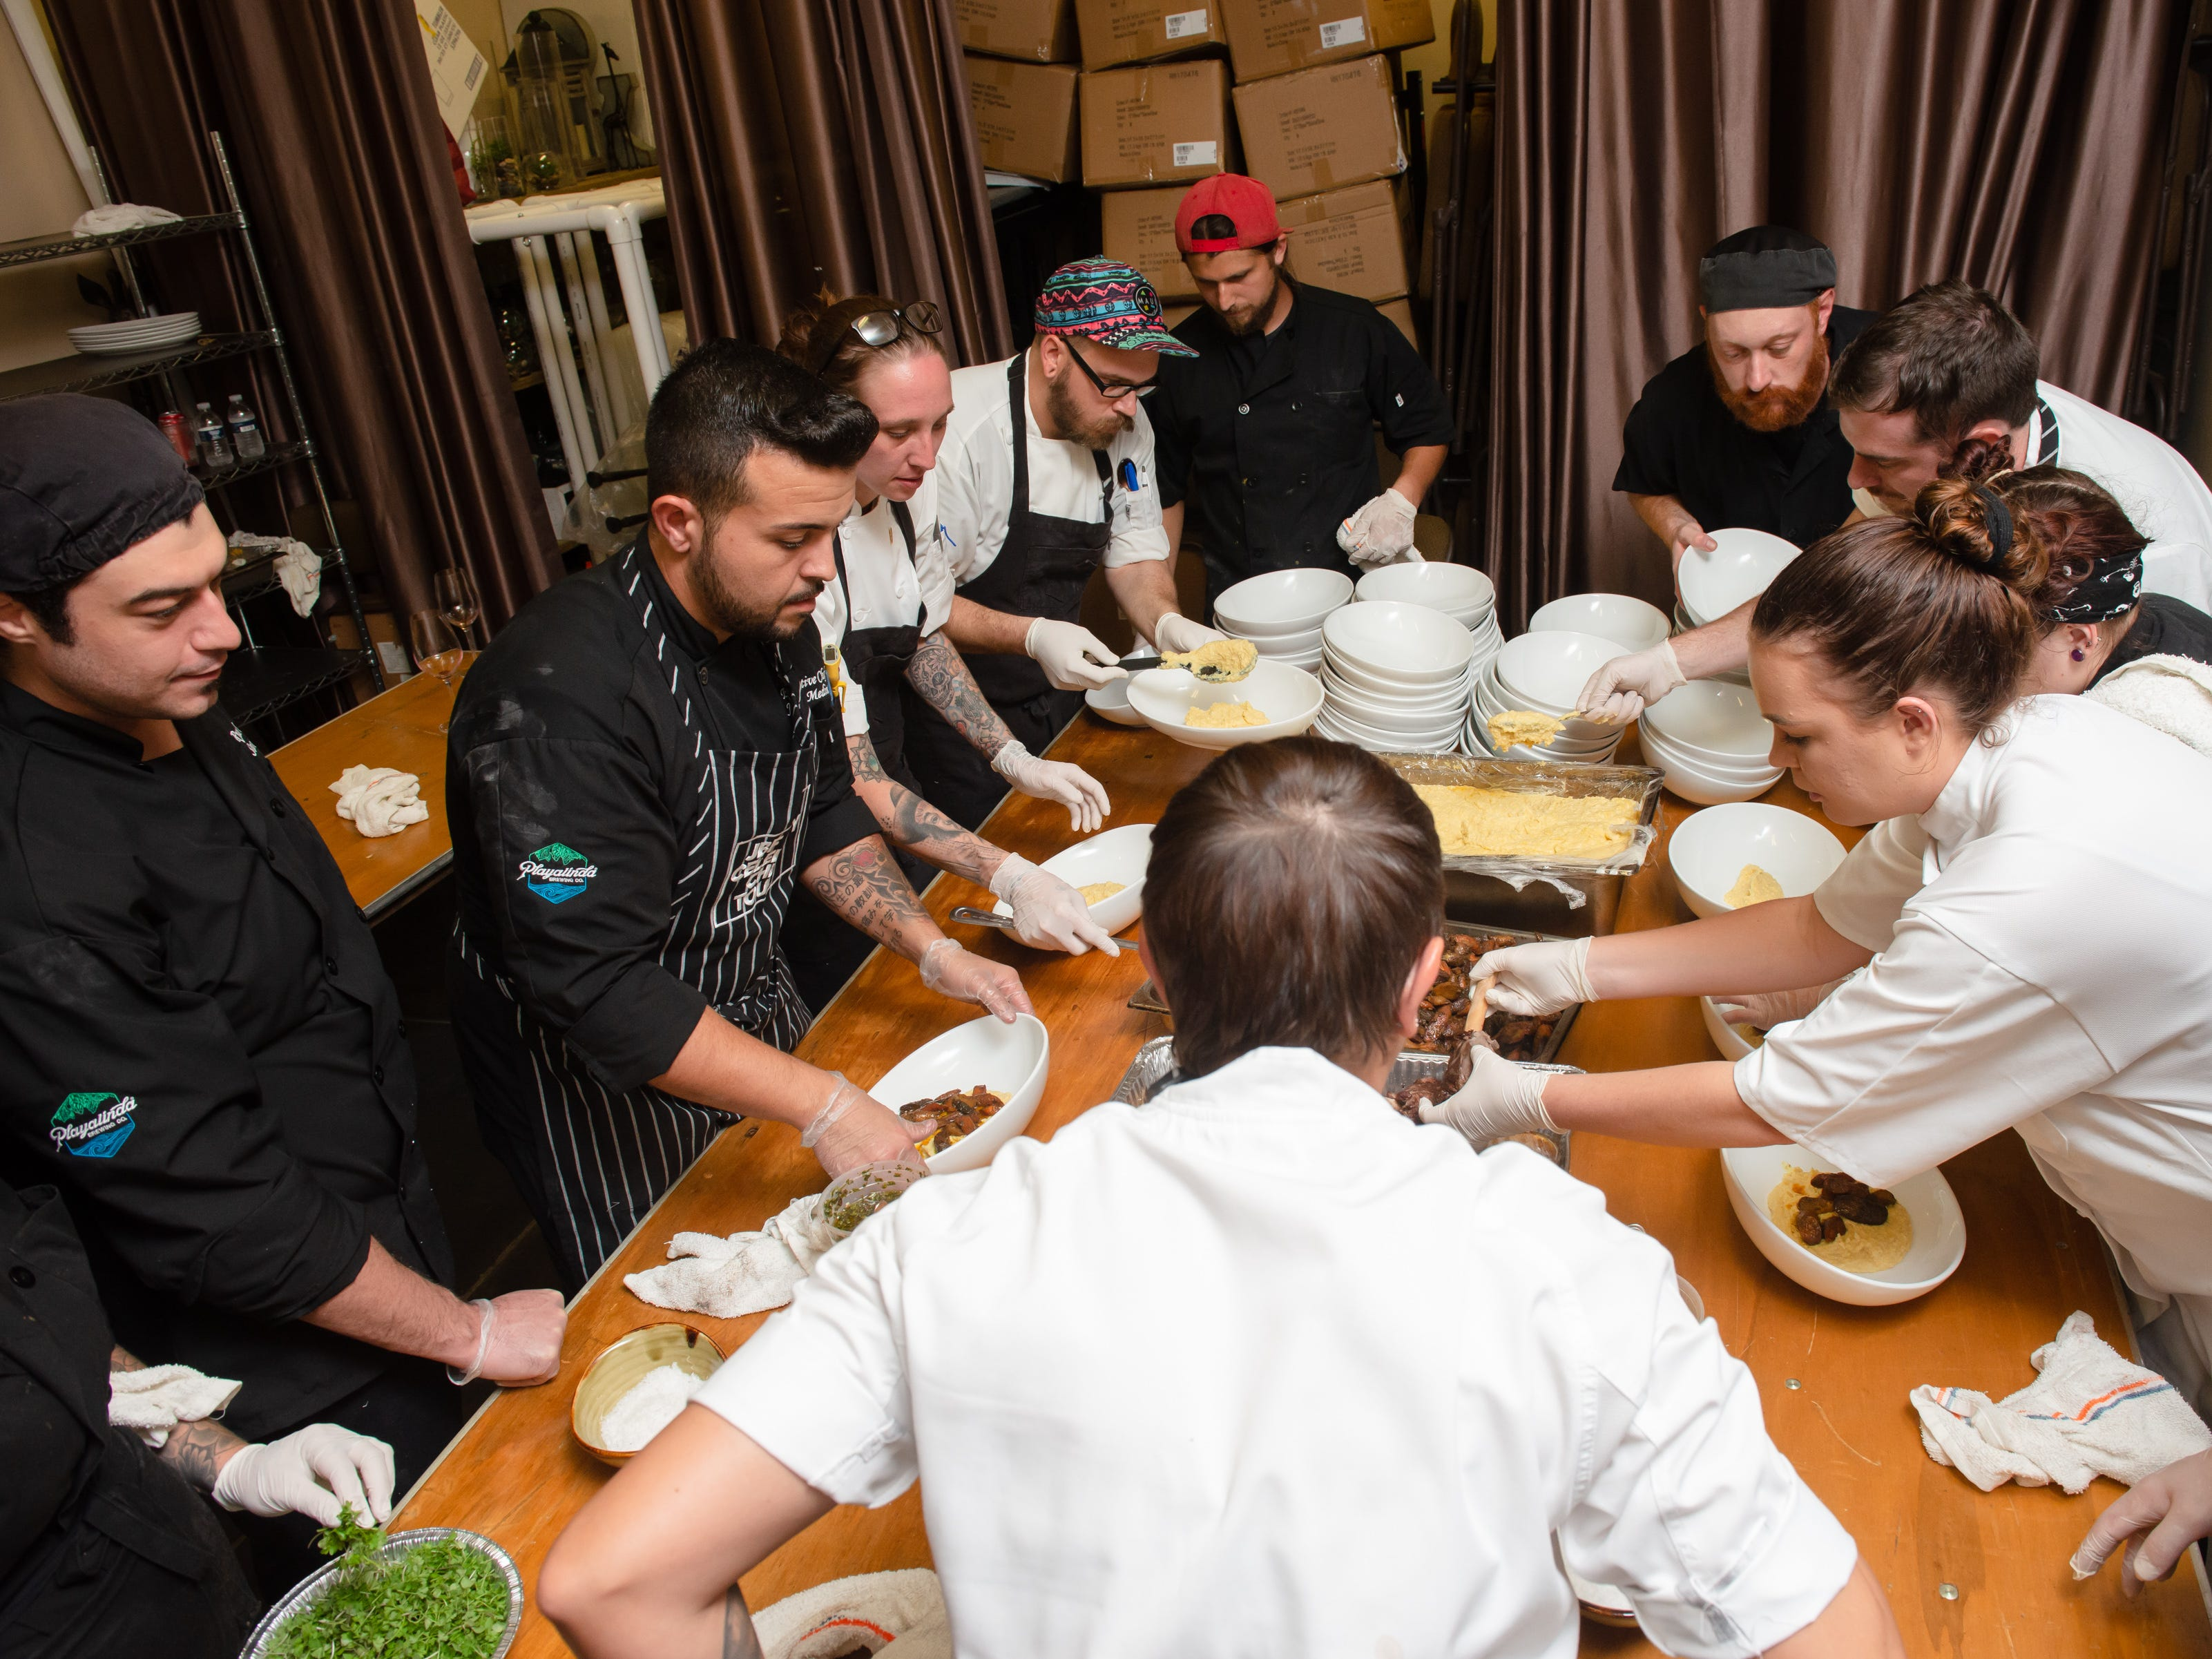 Chefs work together on the main dish at the James Beard Foundation Celebrity Chef Dinner held at the Brevard Zoo. (Photo by Amanda Stratford, for FLORIDA TODAY)